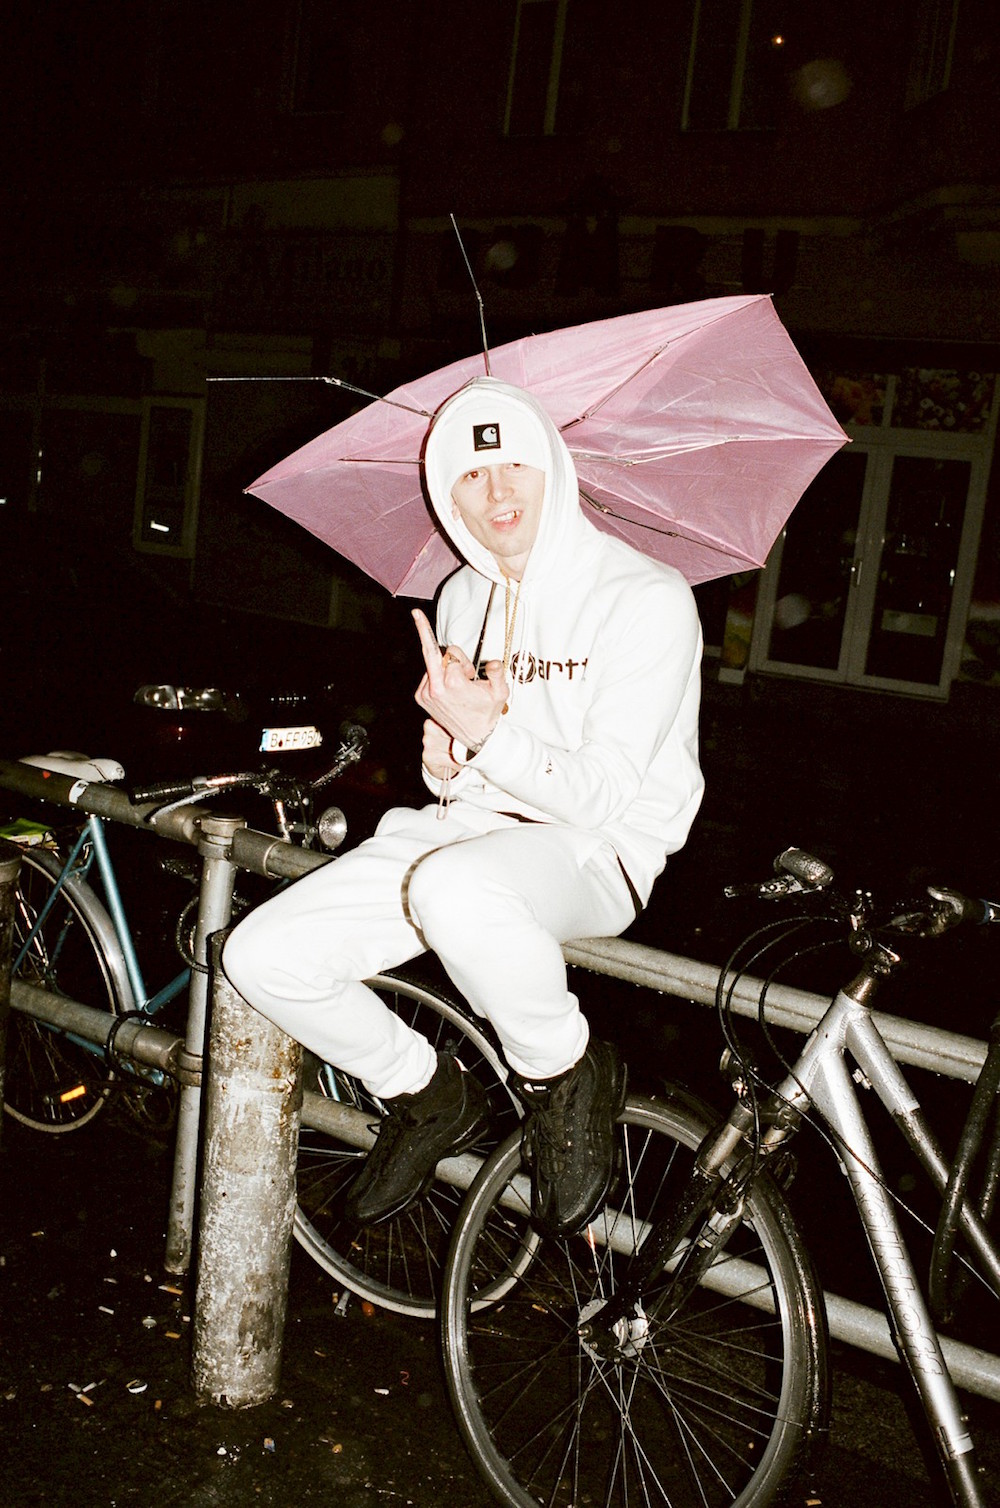 photo photos photography photgrapher photographers man boy street gold chain earring beanie cap streetwear flash pale sweatshirt umbrella rain raining bike bicycle bicycles middle finger